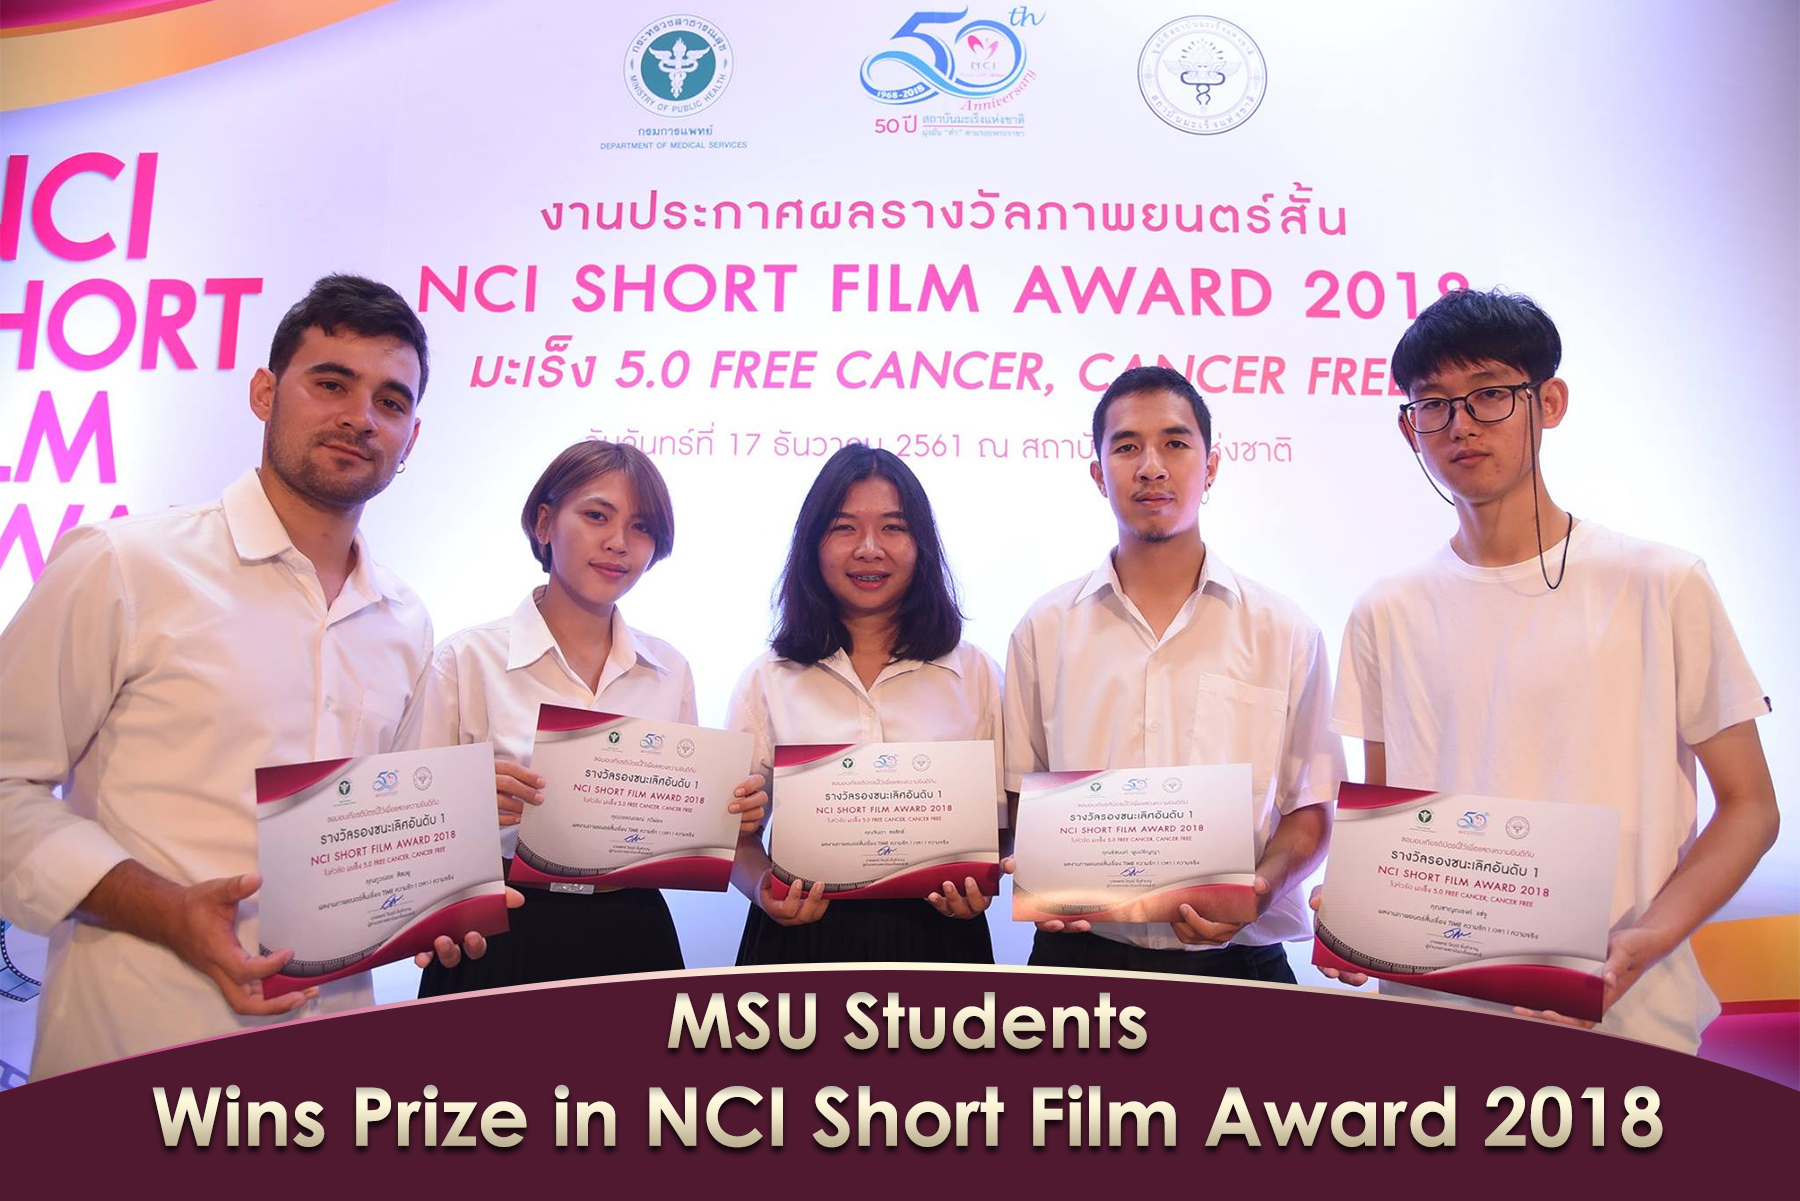 MSU Students Wins Prize in NCI Short Film Award 2018